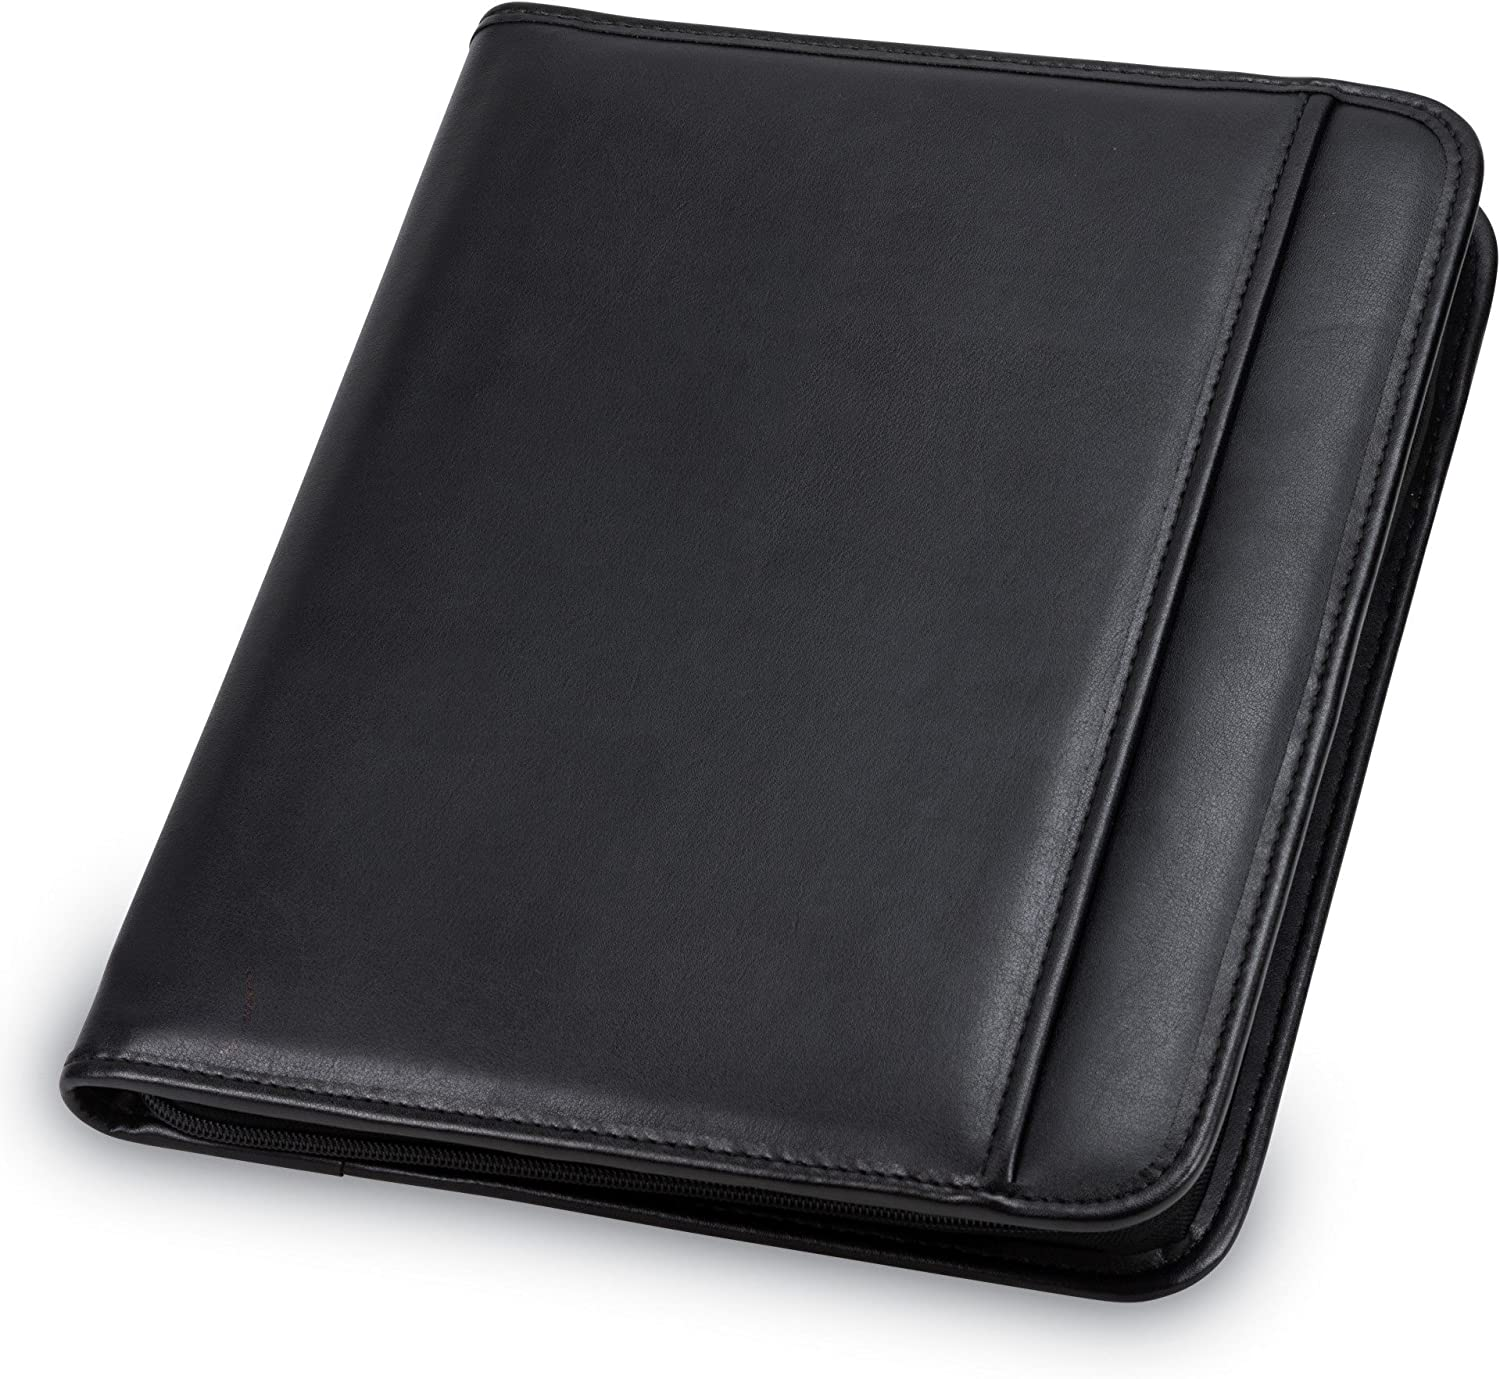 Samsill Professional Padfolio – Resume Portfolio / Business Portfolio with Secure Zippered Closure, 10.1 Inch Tablet Sleeve, 8.5 x11 Writing Pad, Black